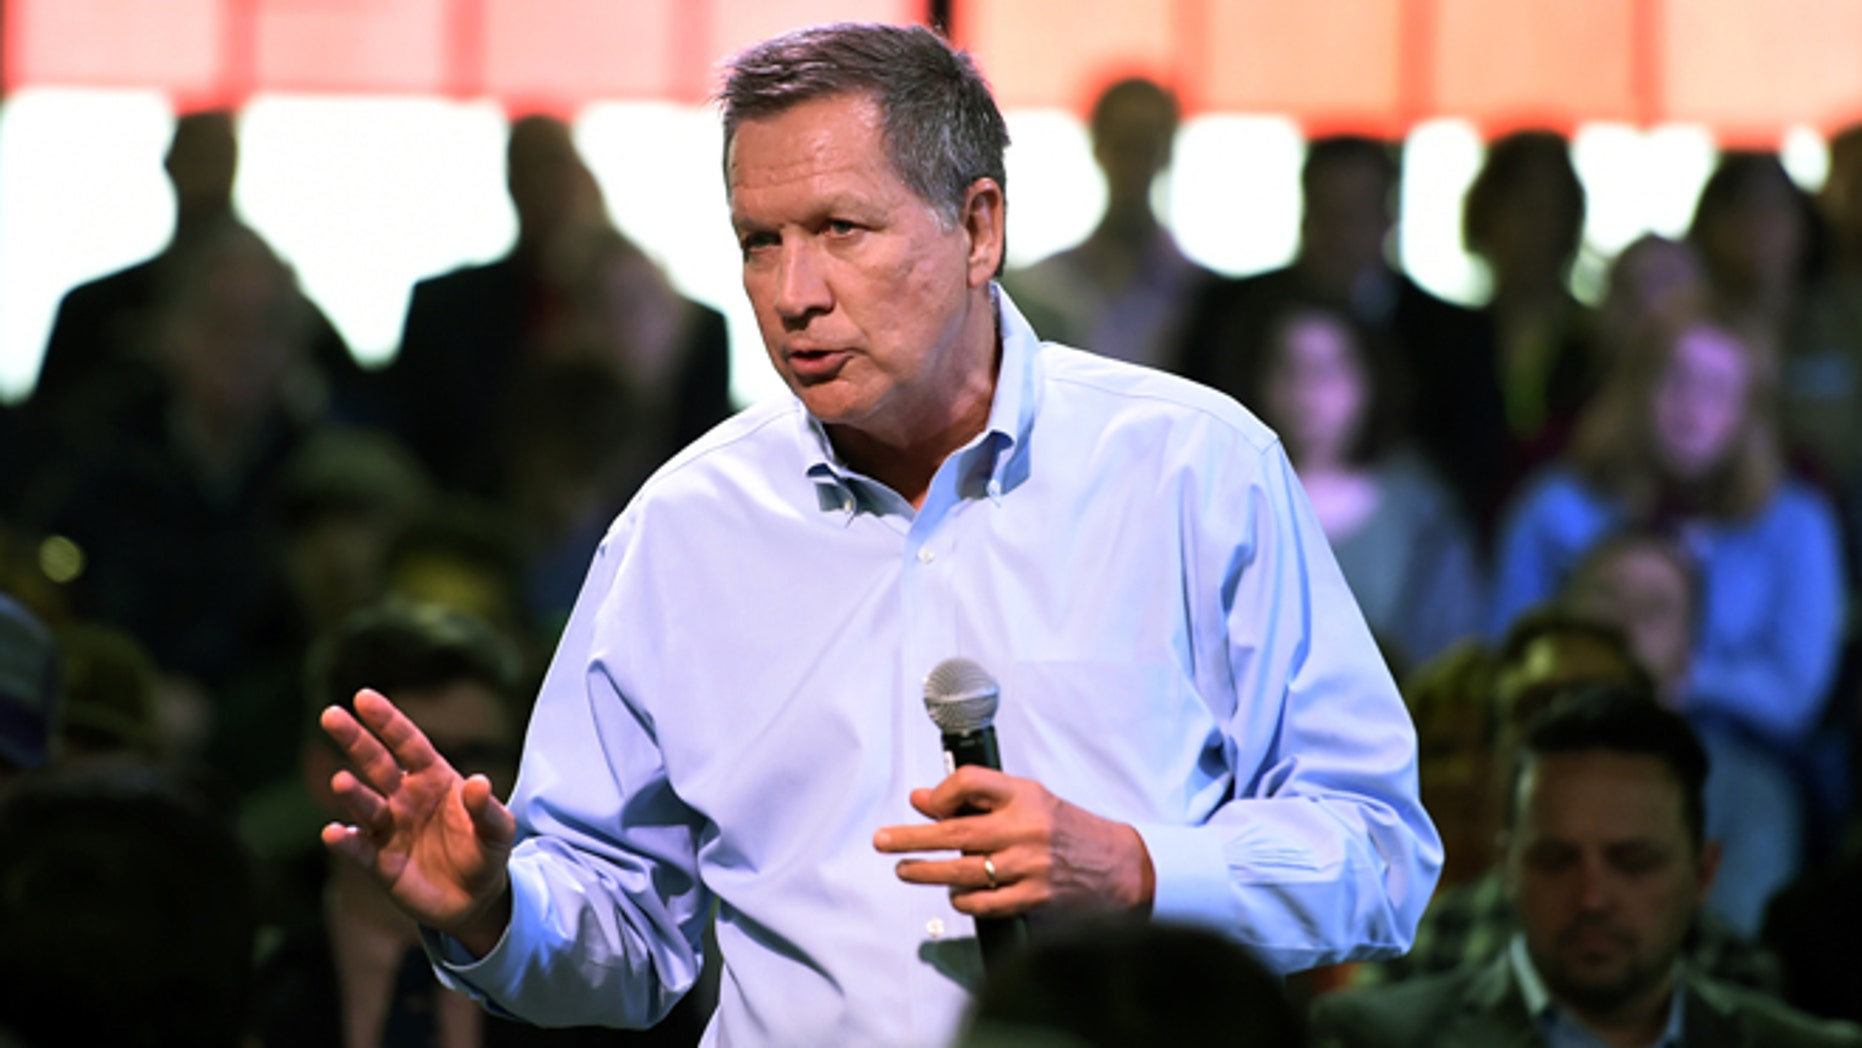 Republican presidential candidate Ohio Gov. John Kasich speaks at a town hall meeting in Portland, Ore., Thursday, April 28 , 2016. (AP Photo/Steve Dykes)